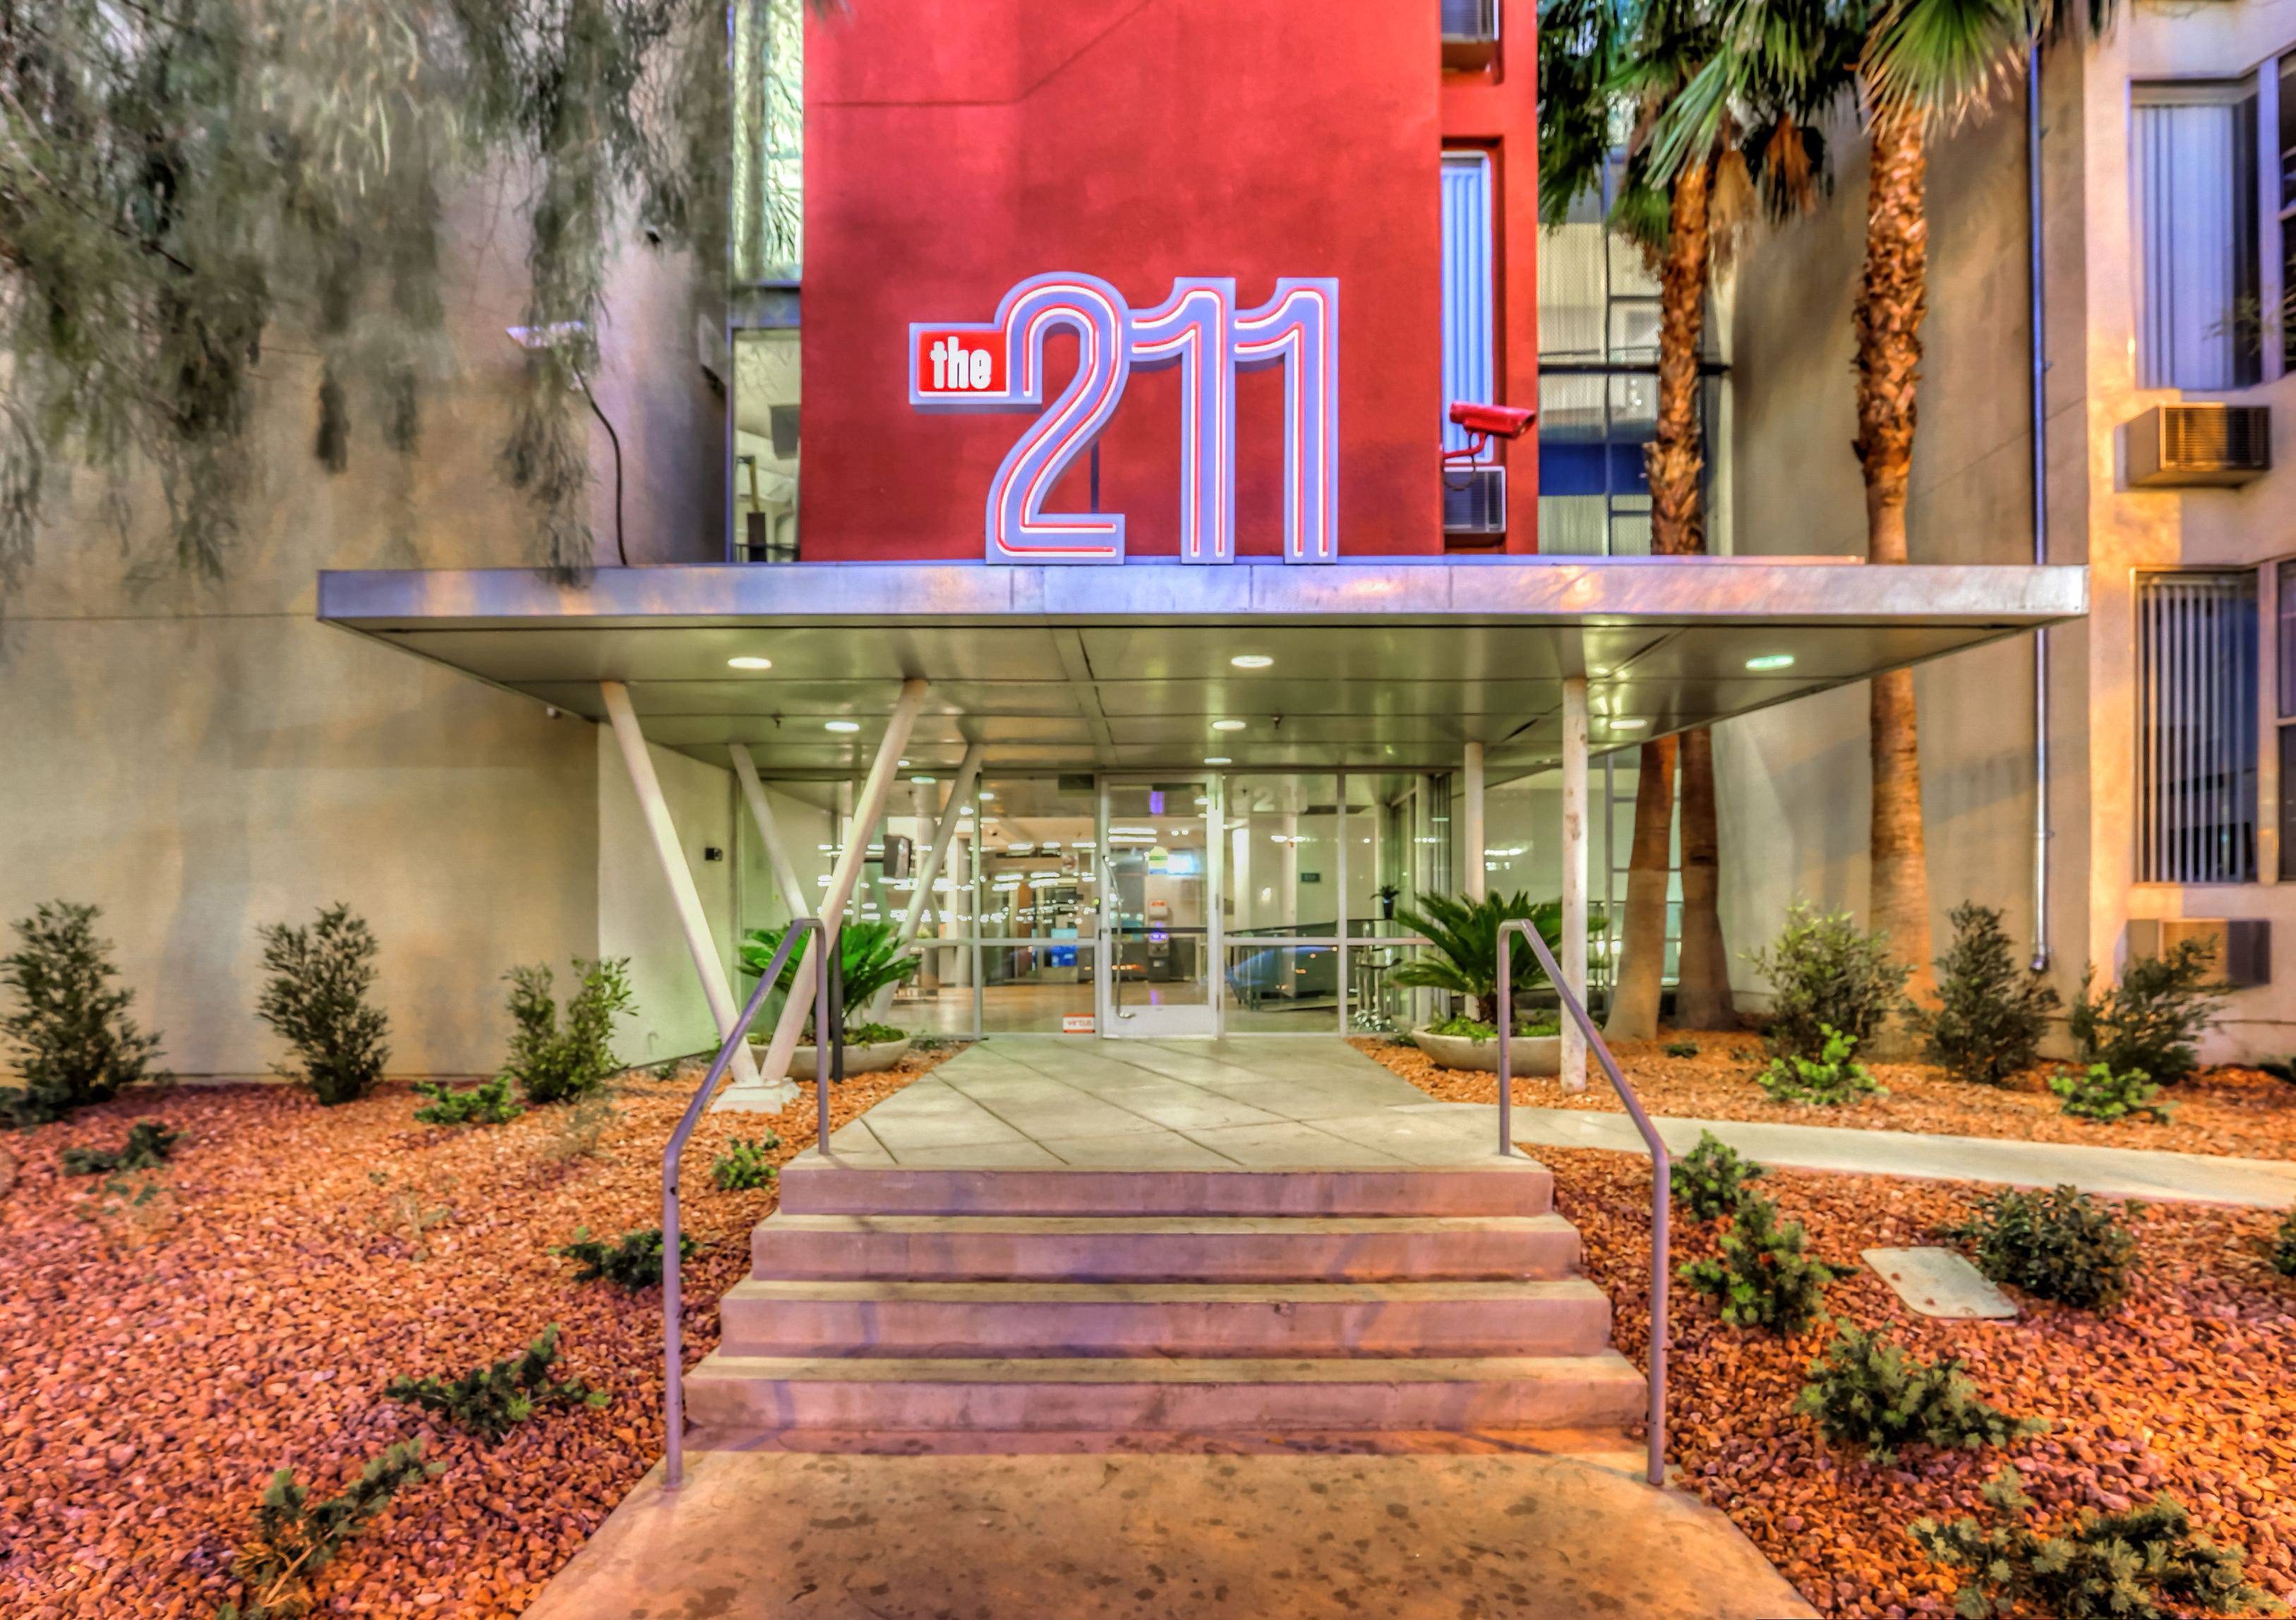 The 211